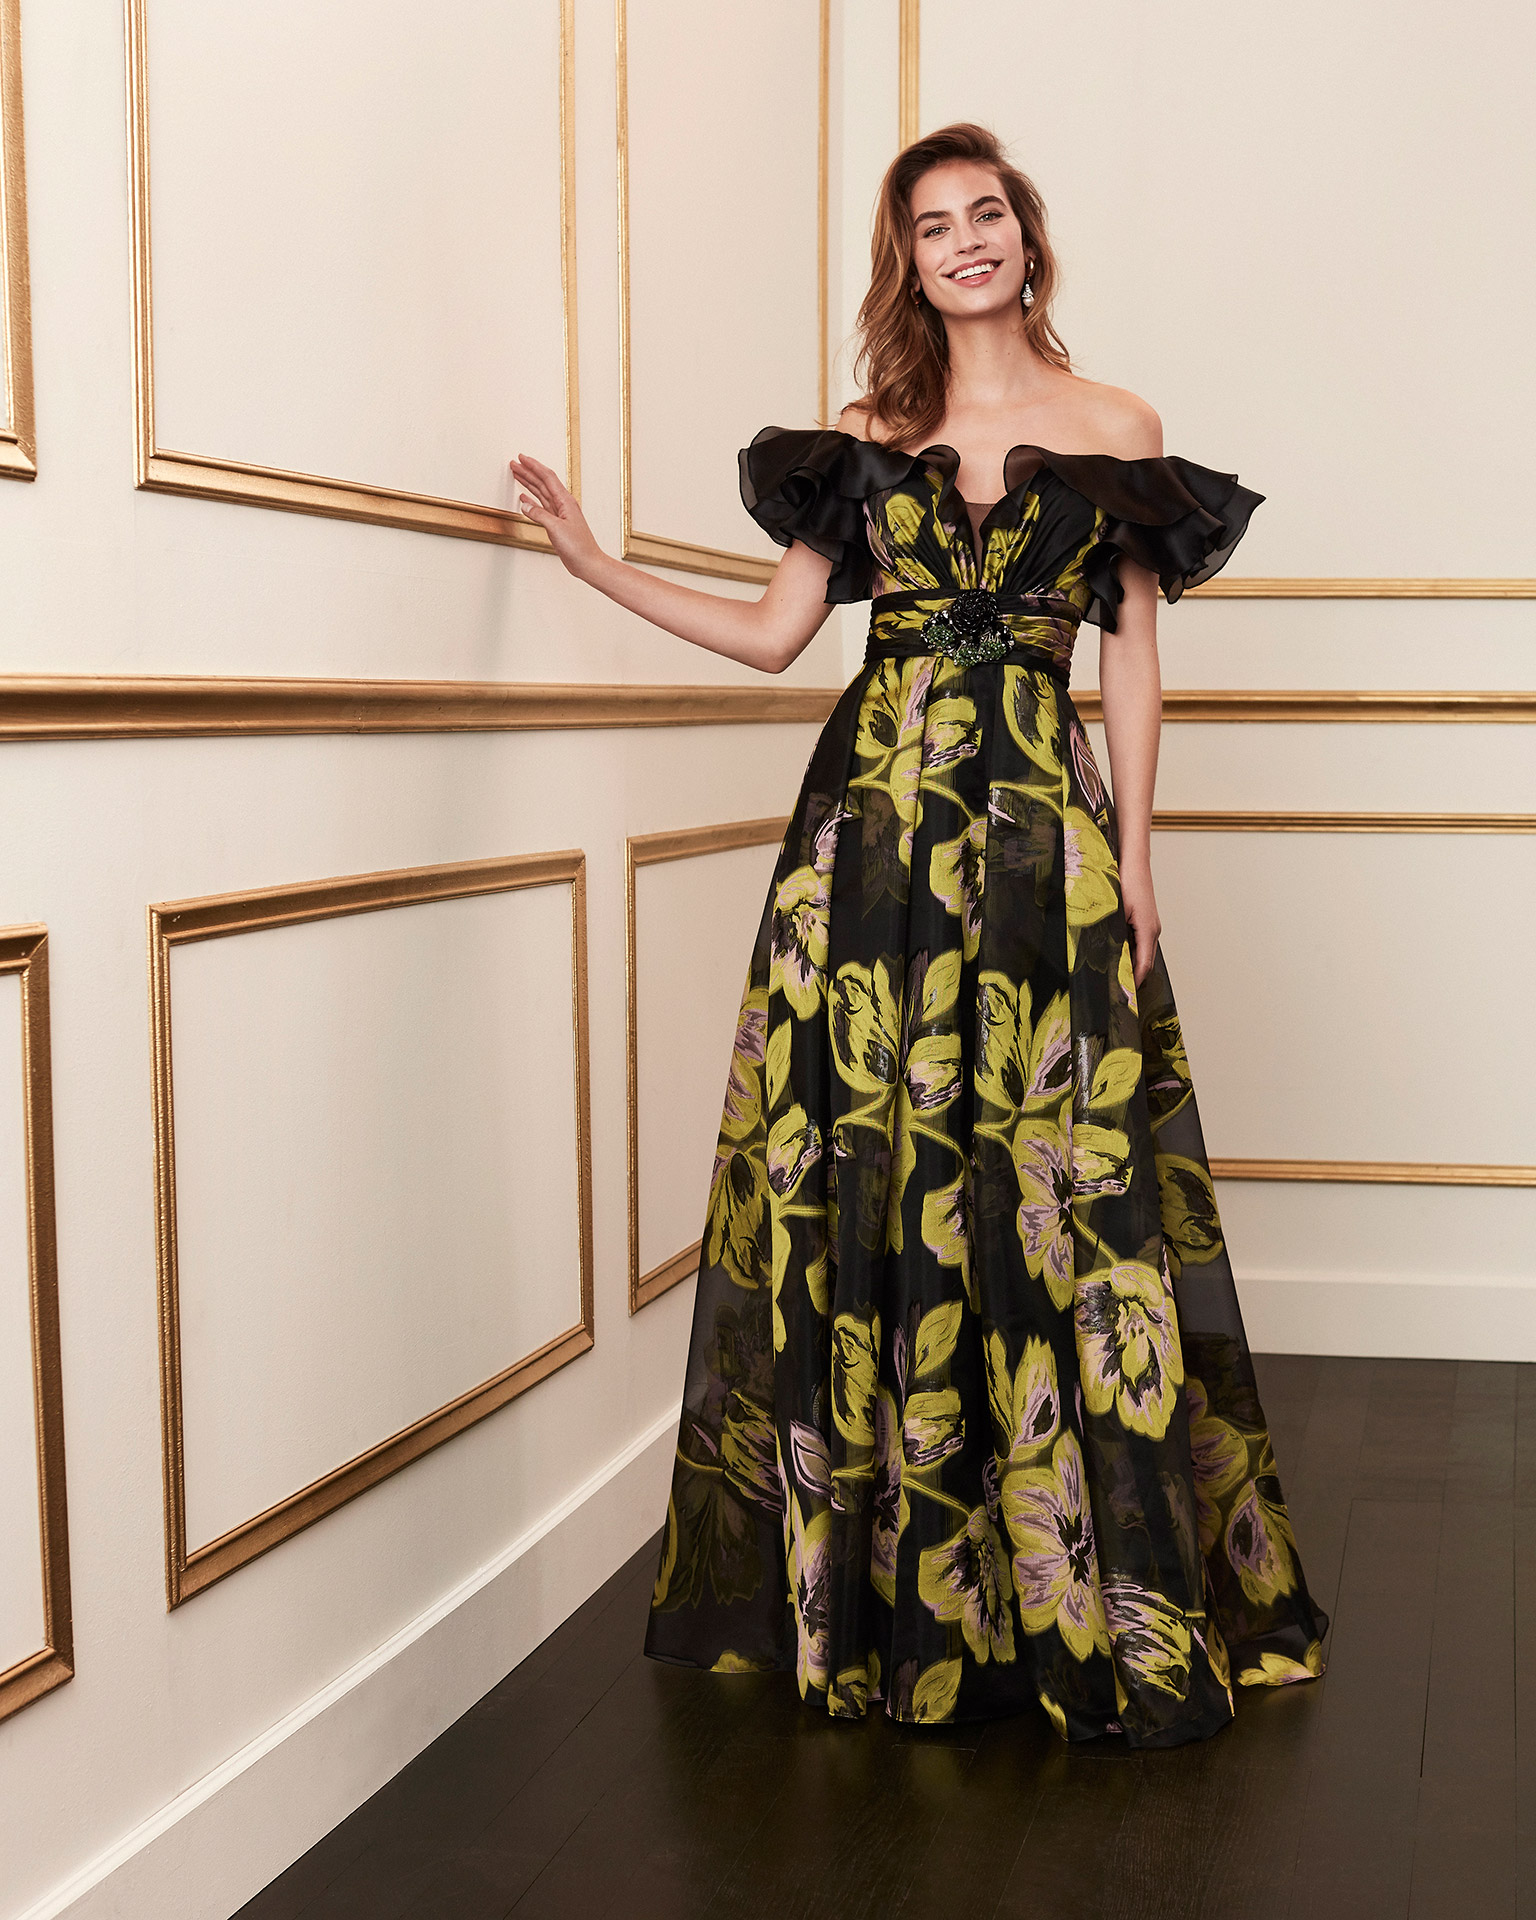 Organza cocktail dress. Off-the-shoulder neckline with full sleeves. 2020 MARFIL BARCELONA Collection.